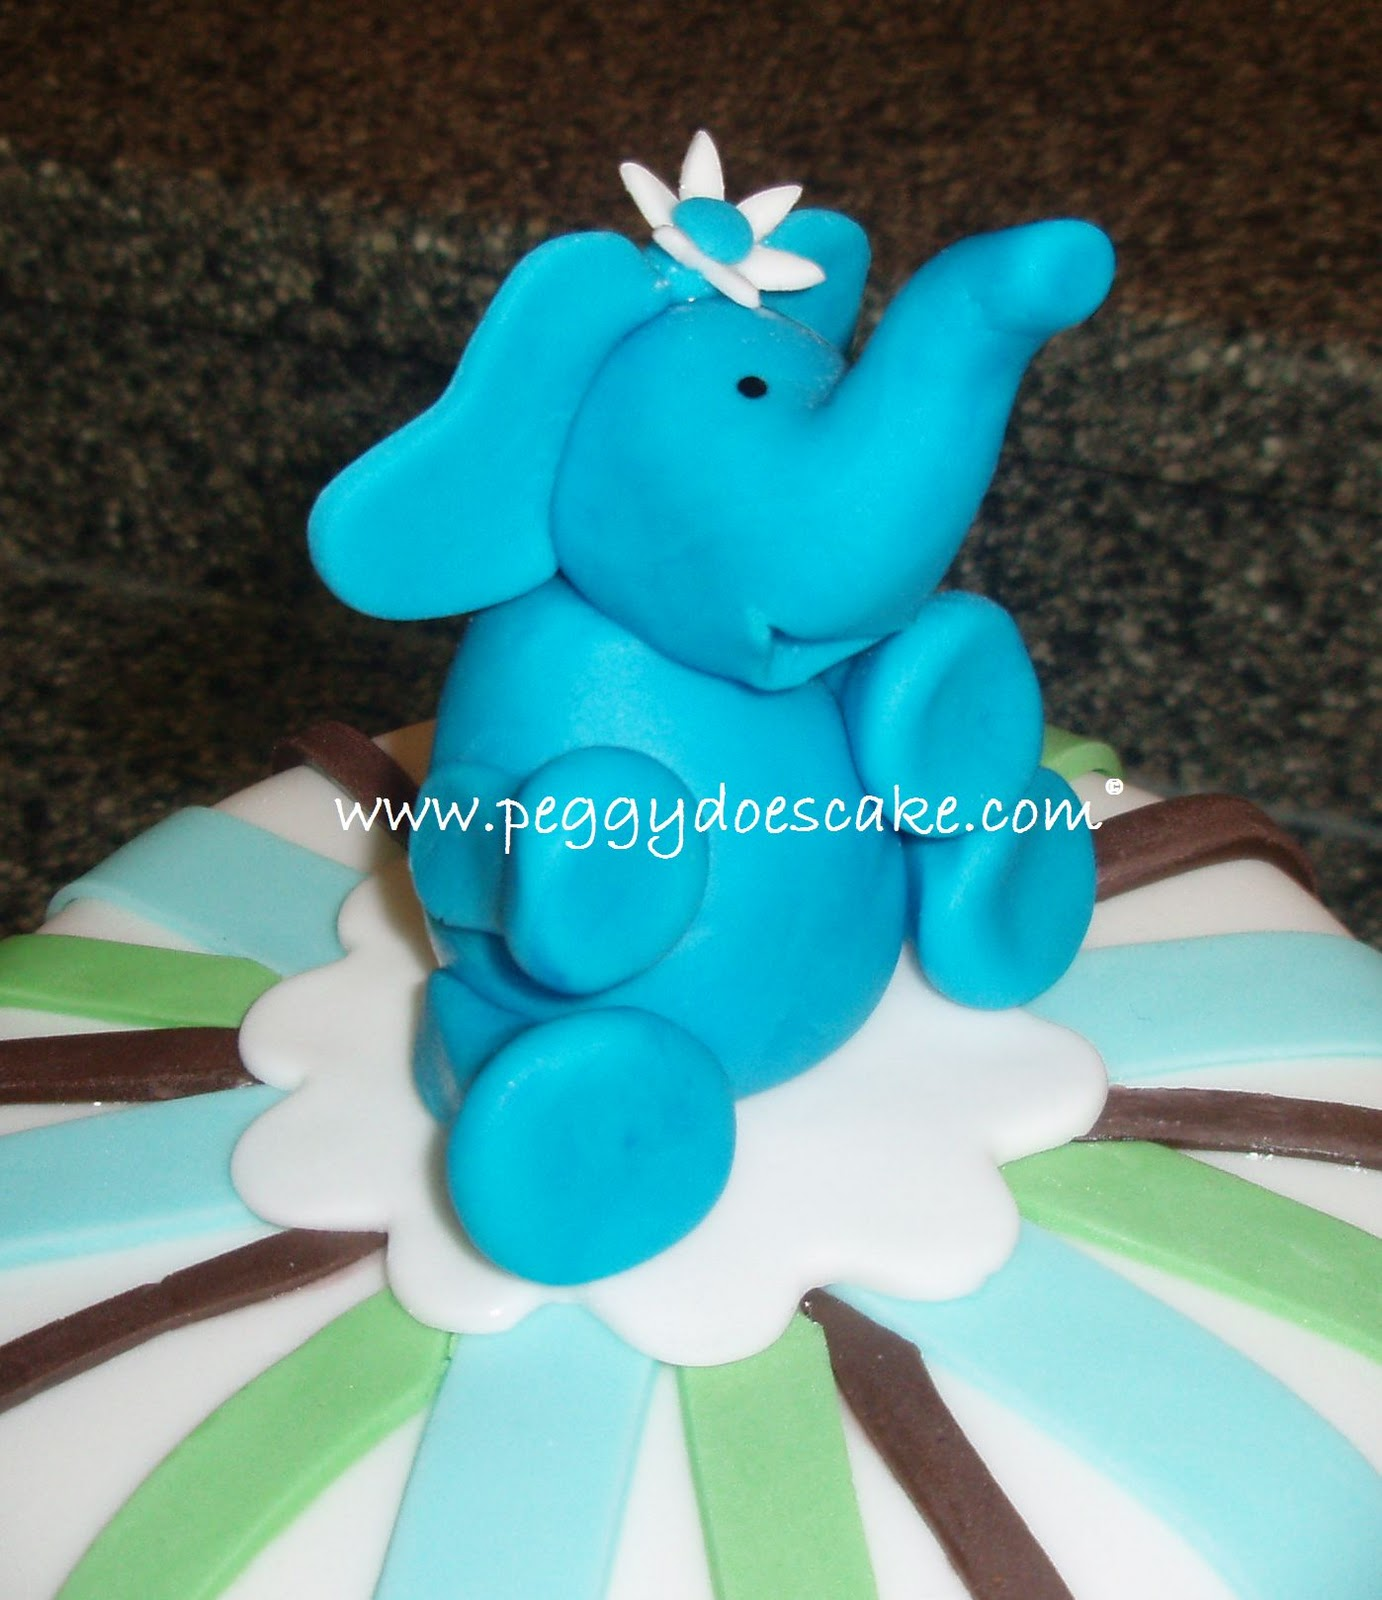 Elephant Baby Shower Cake click photos to enlarge